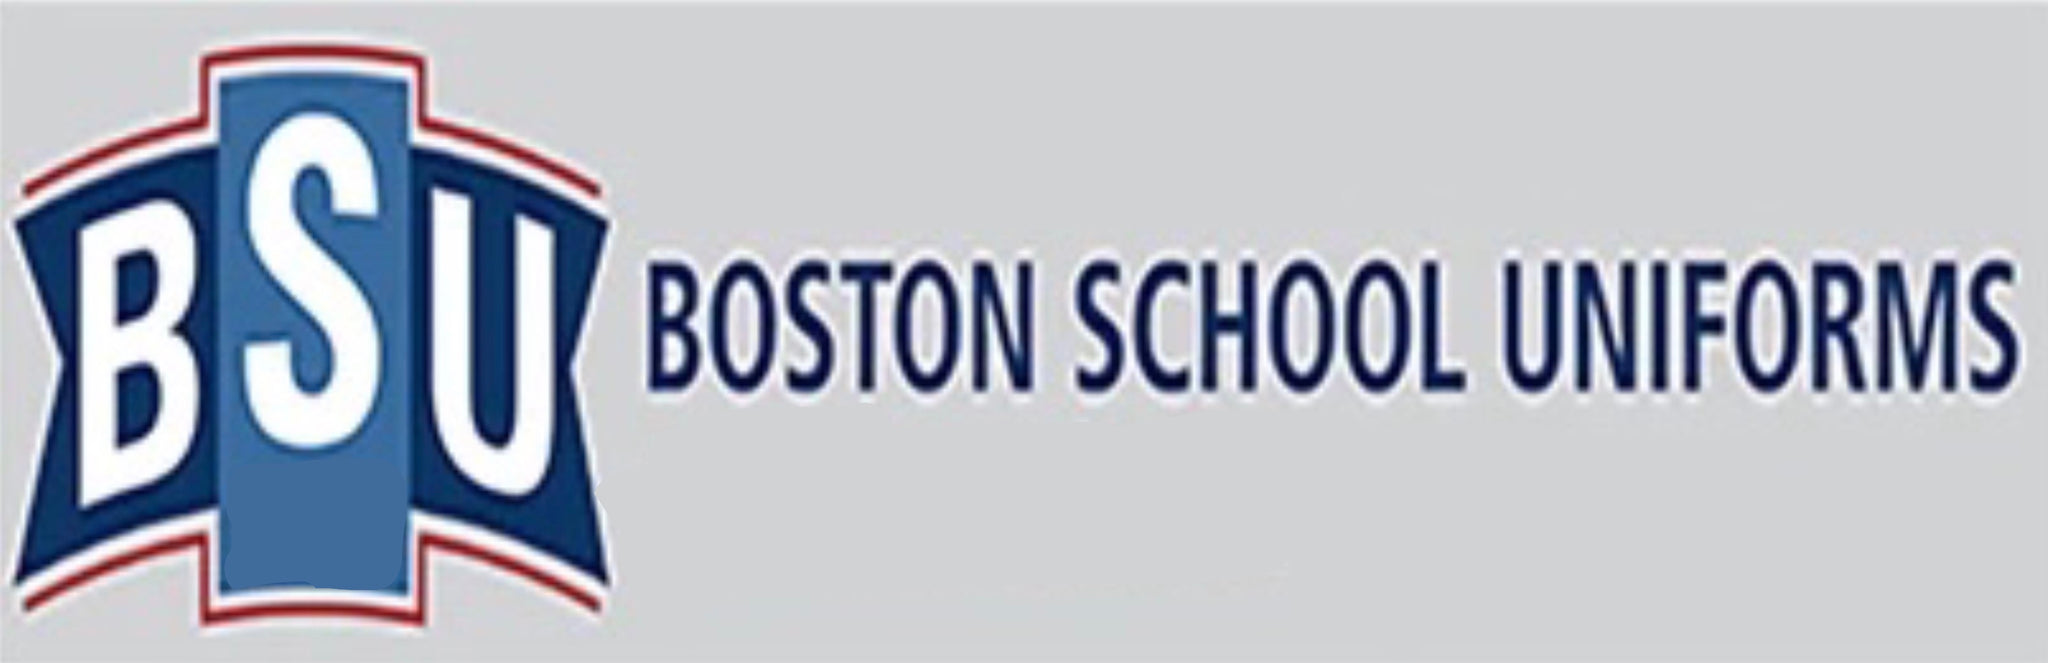 Boston School Uniforms